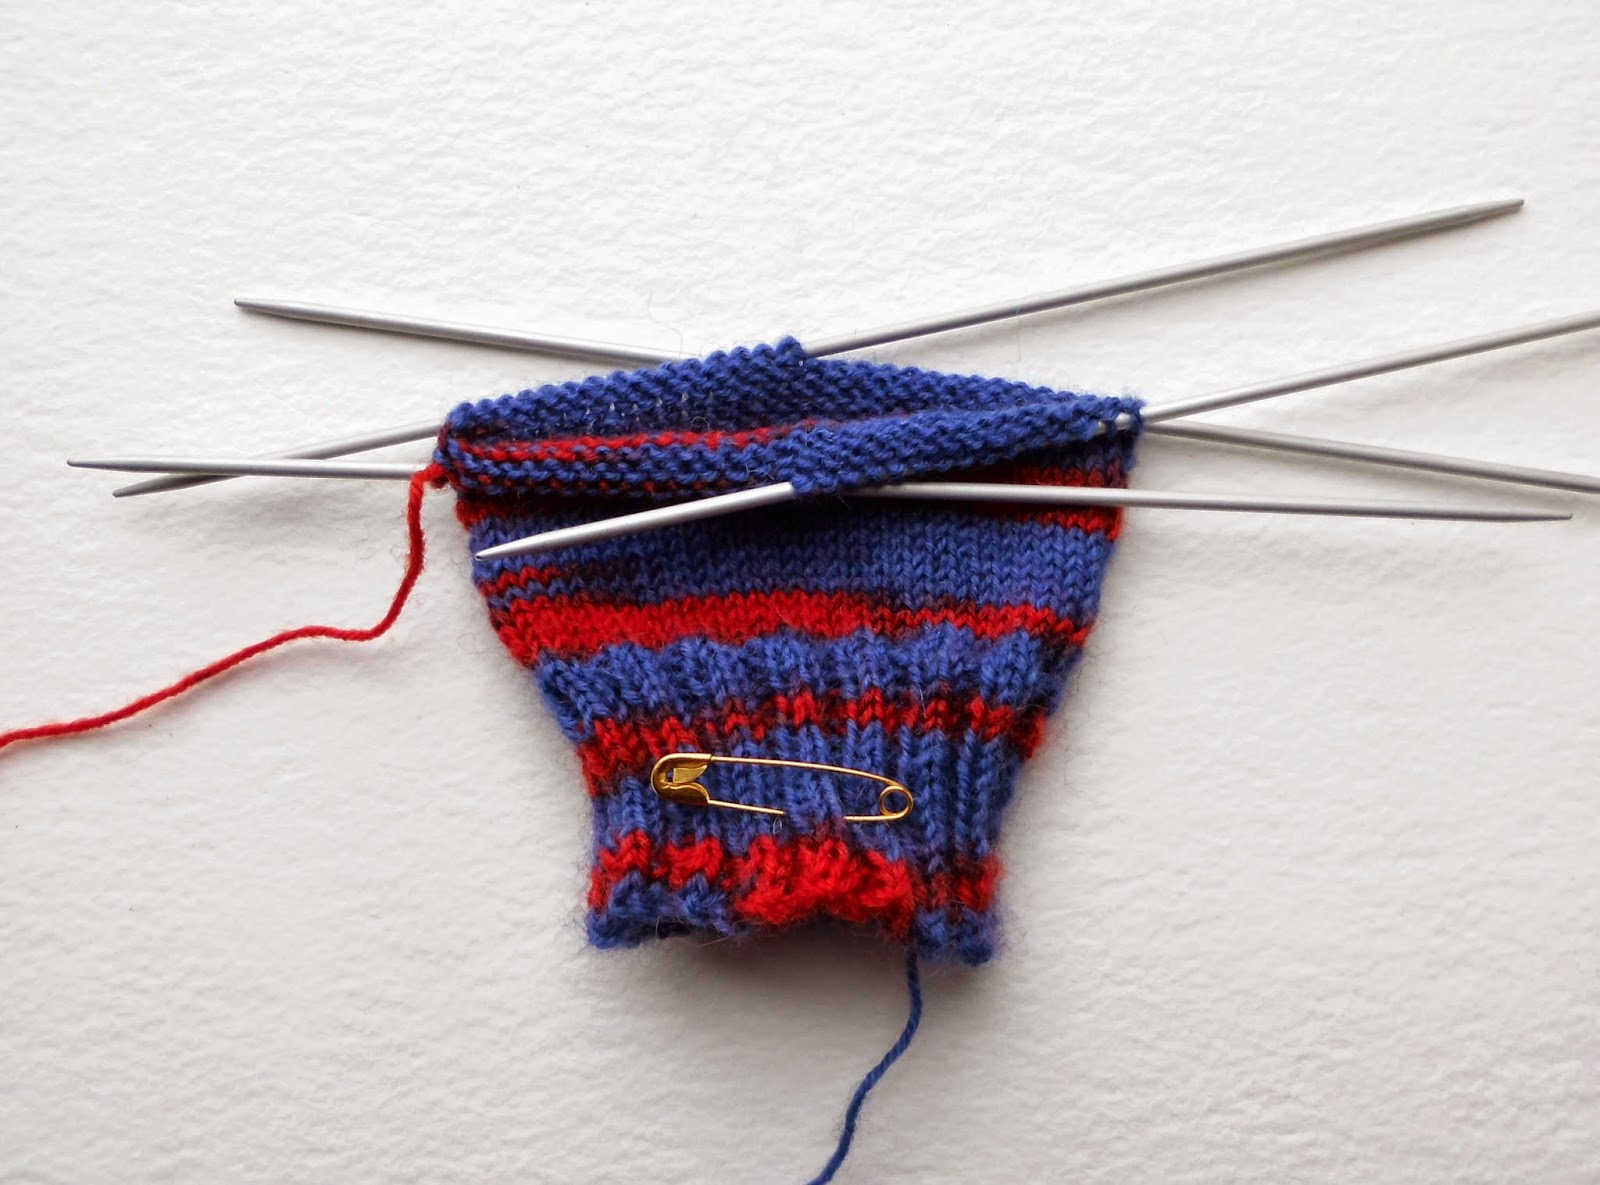 Winwick Mum: Beginner sock knitting: Sockalong - needles